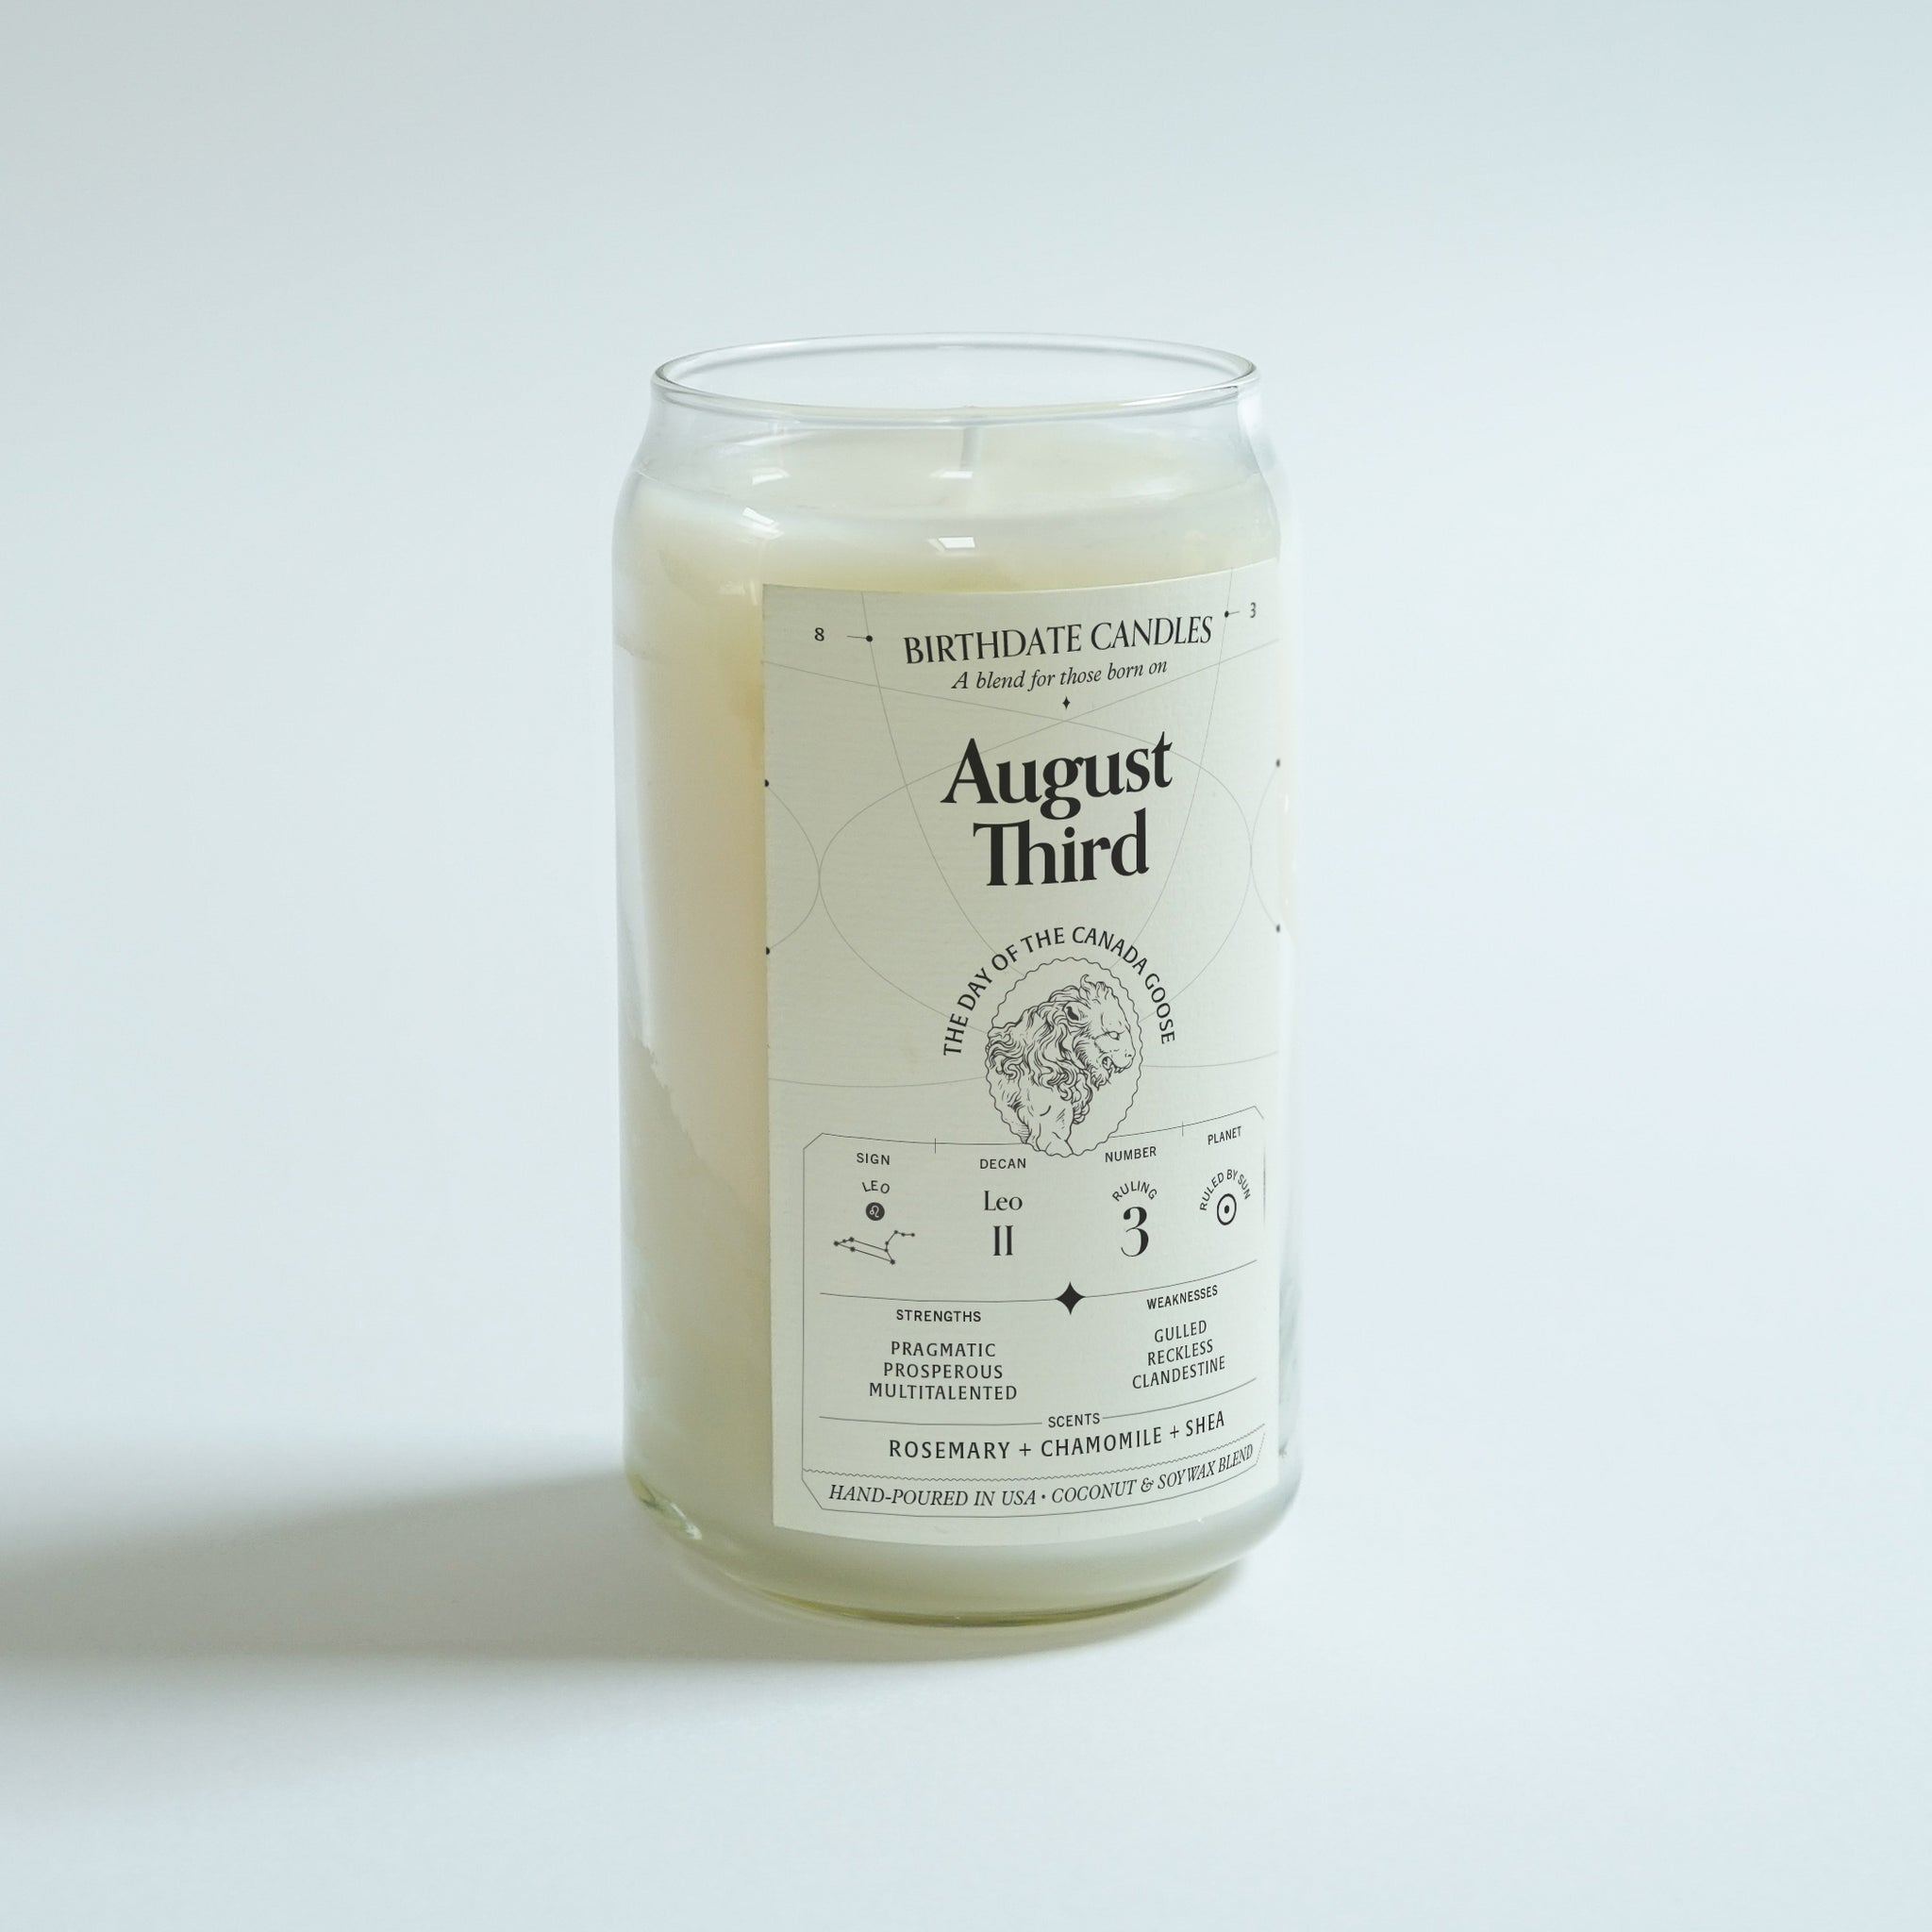 The August Third Birthday Candle